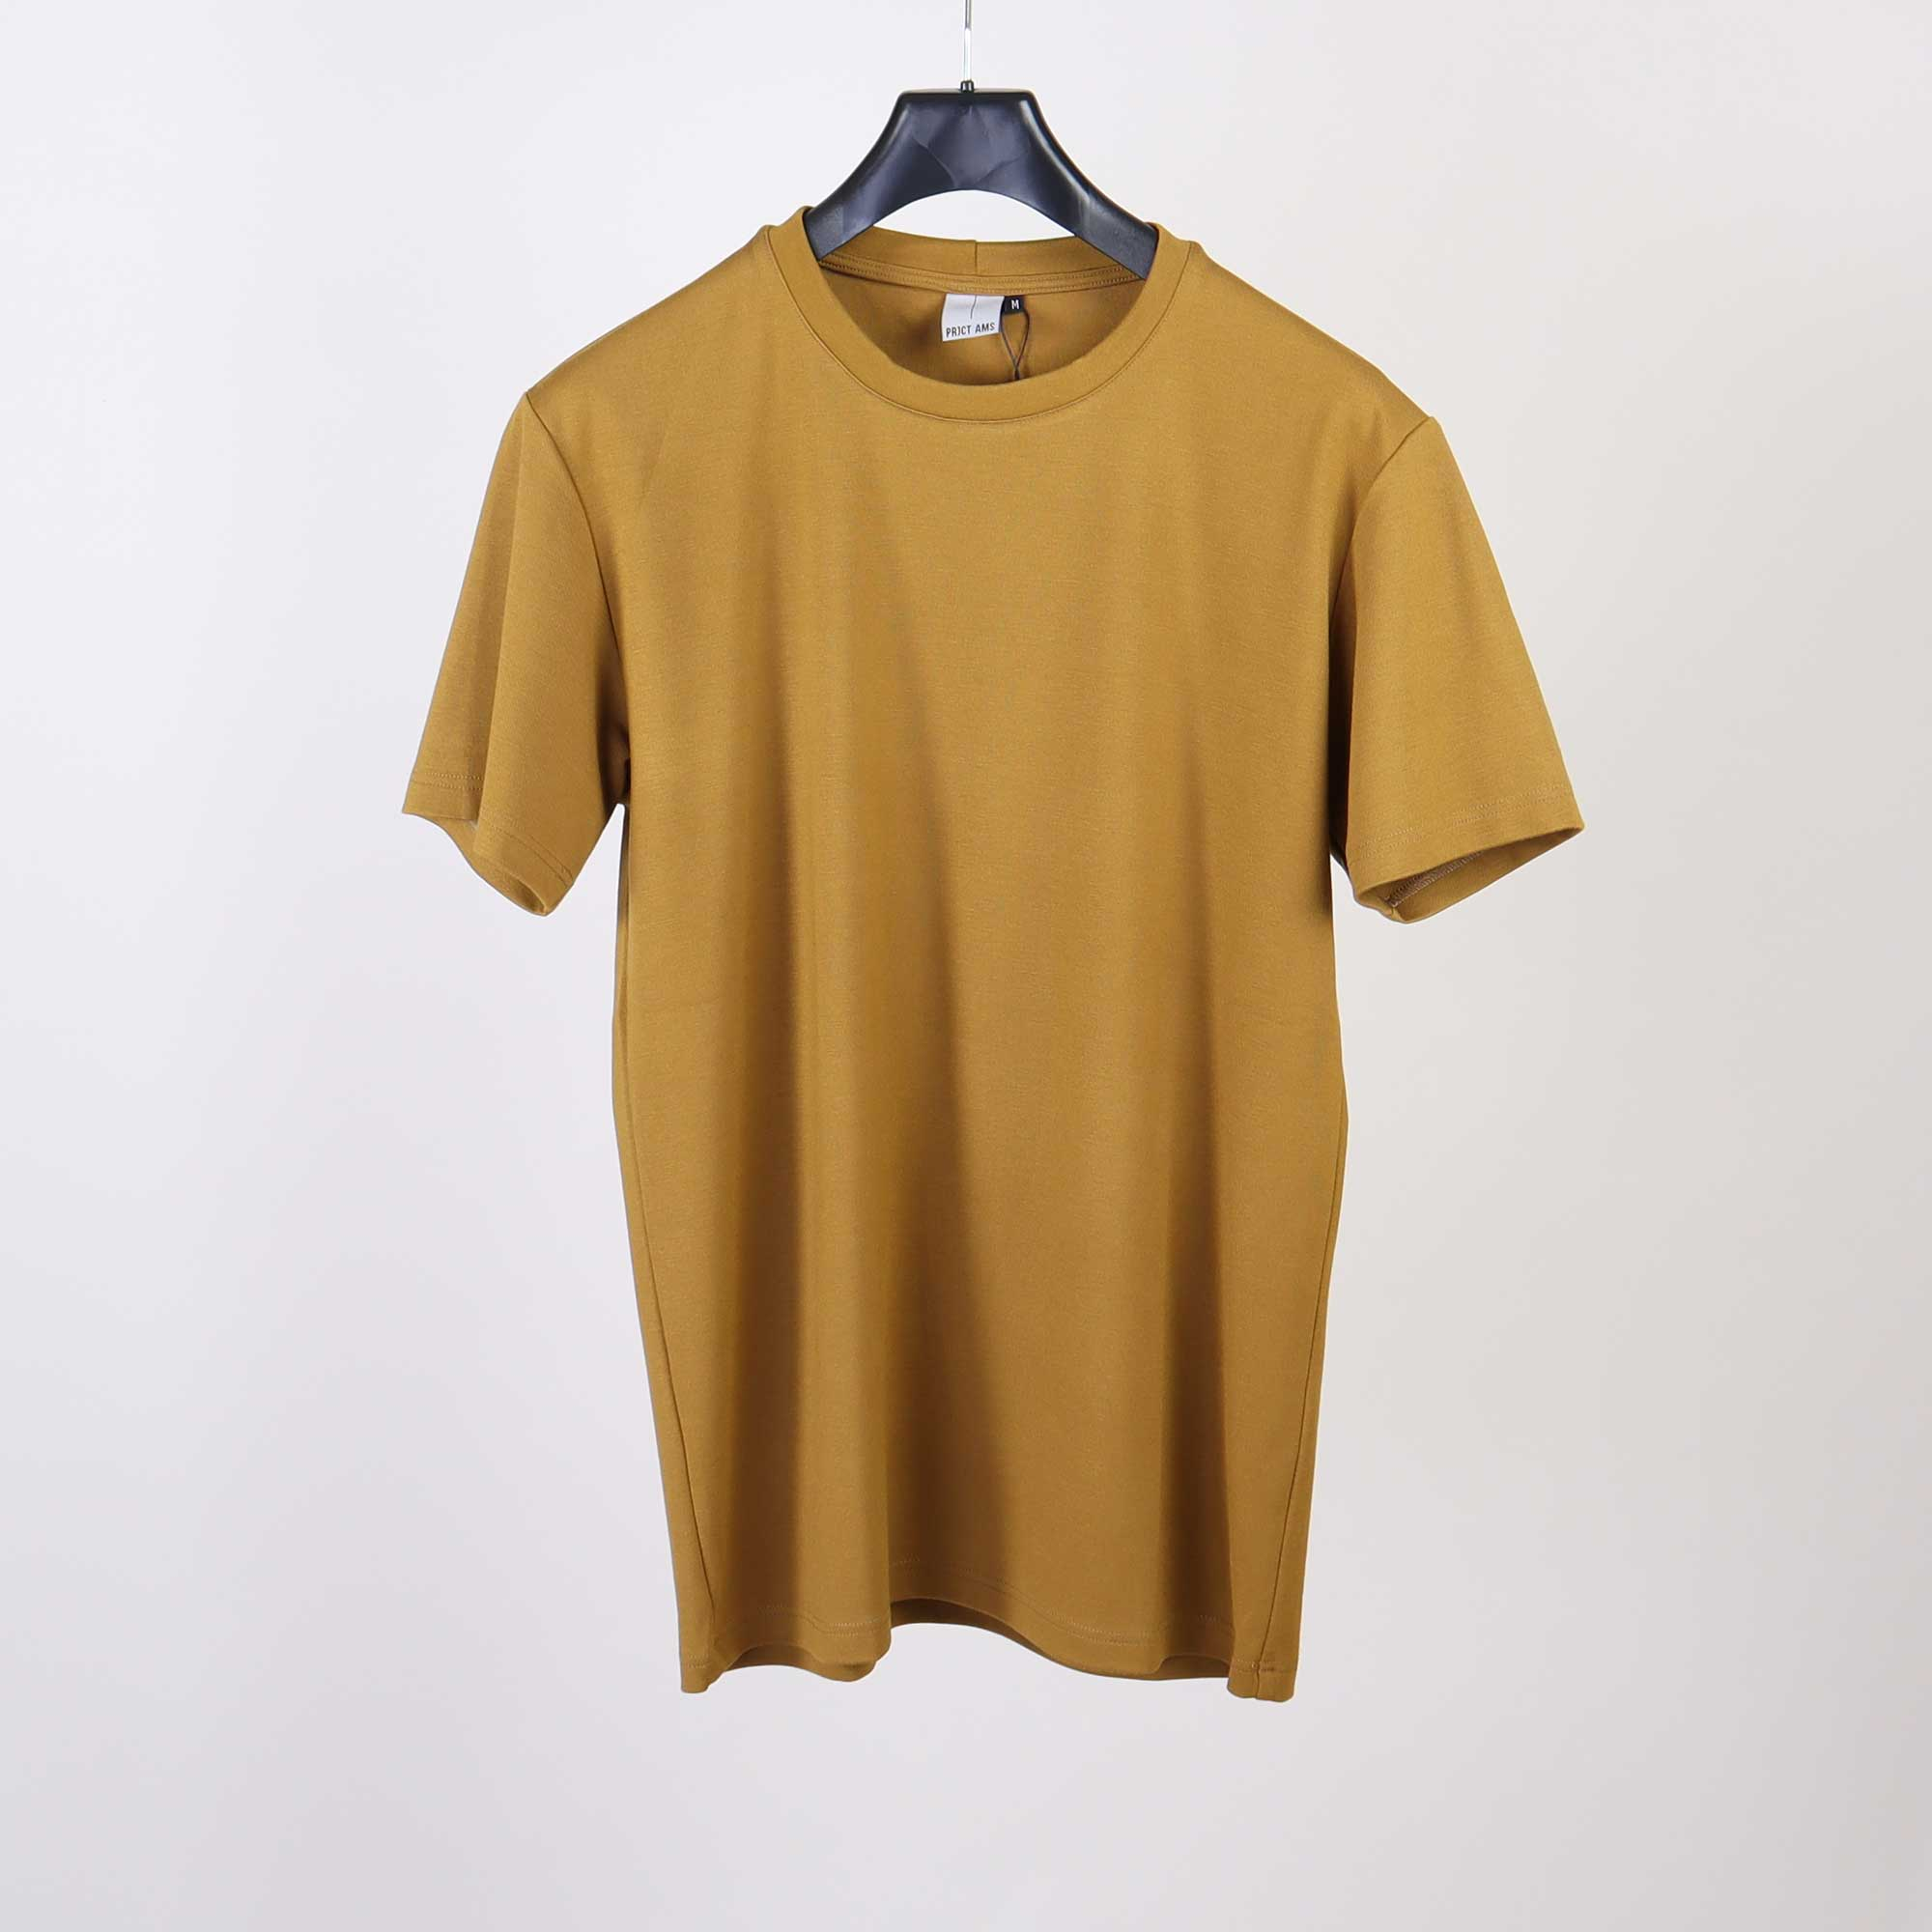 punto-tee-mosterd-product-1